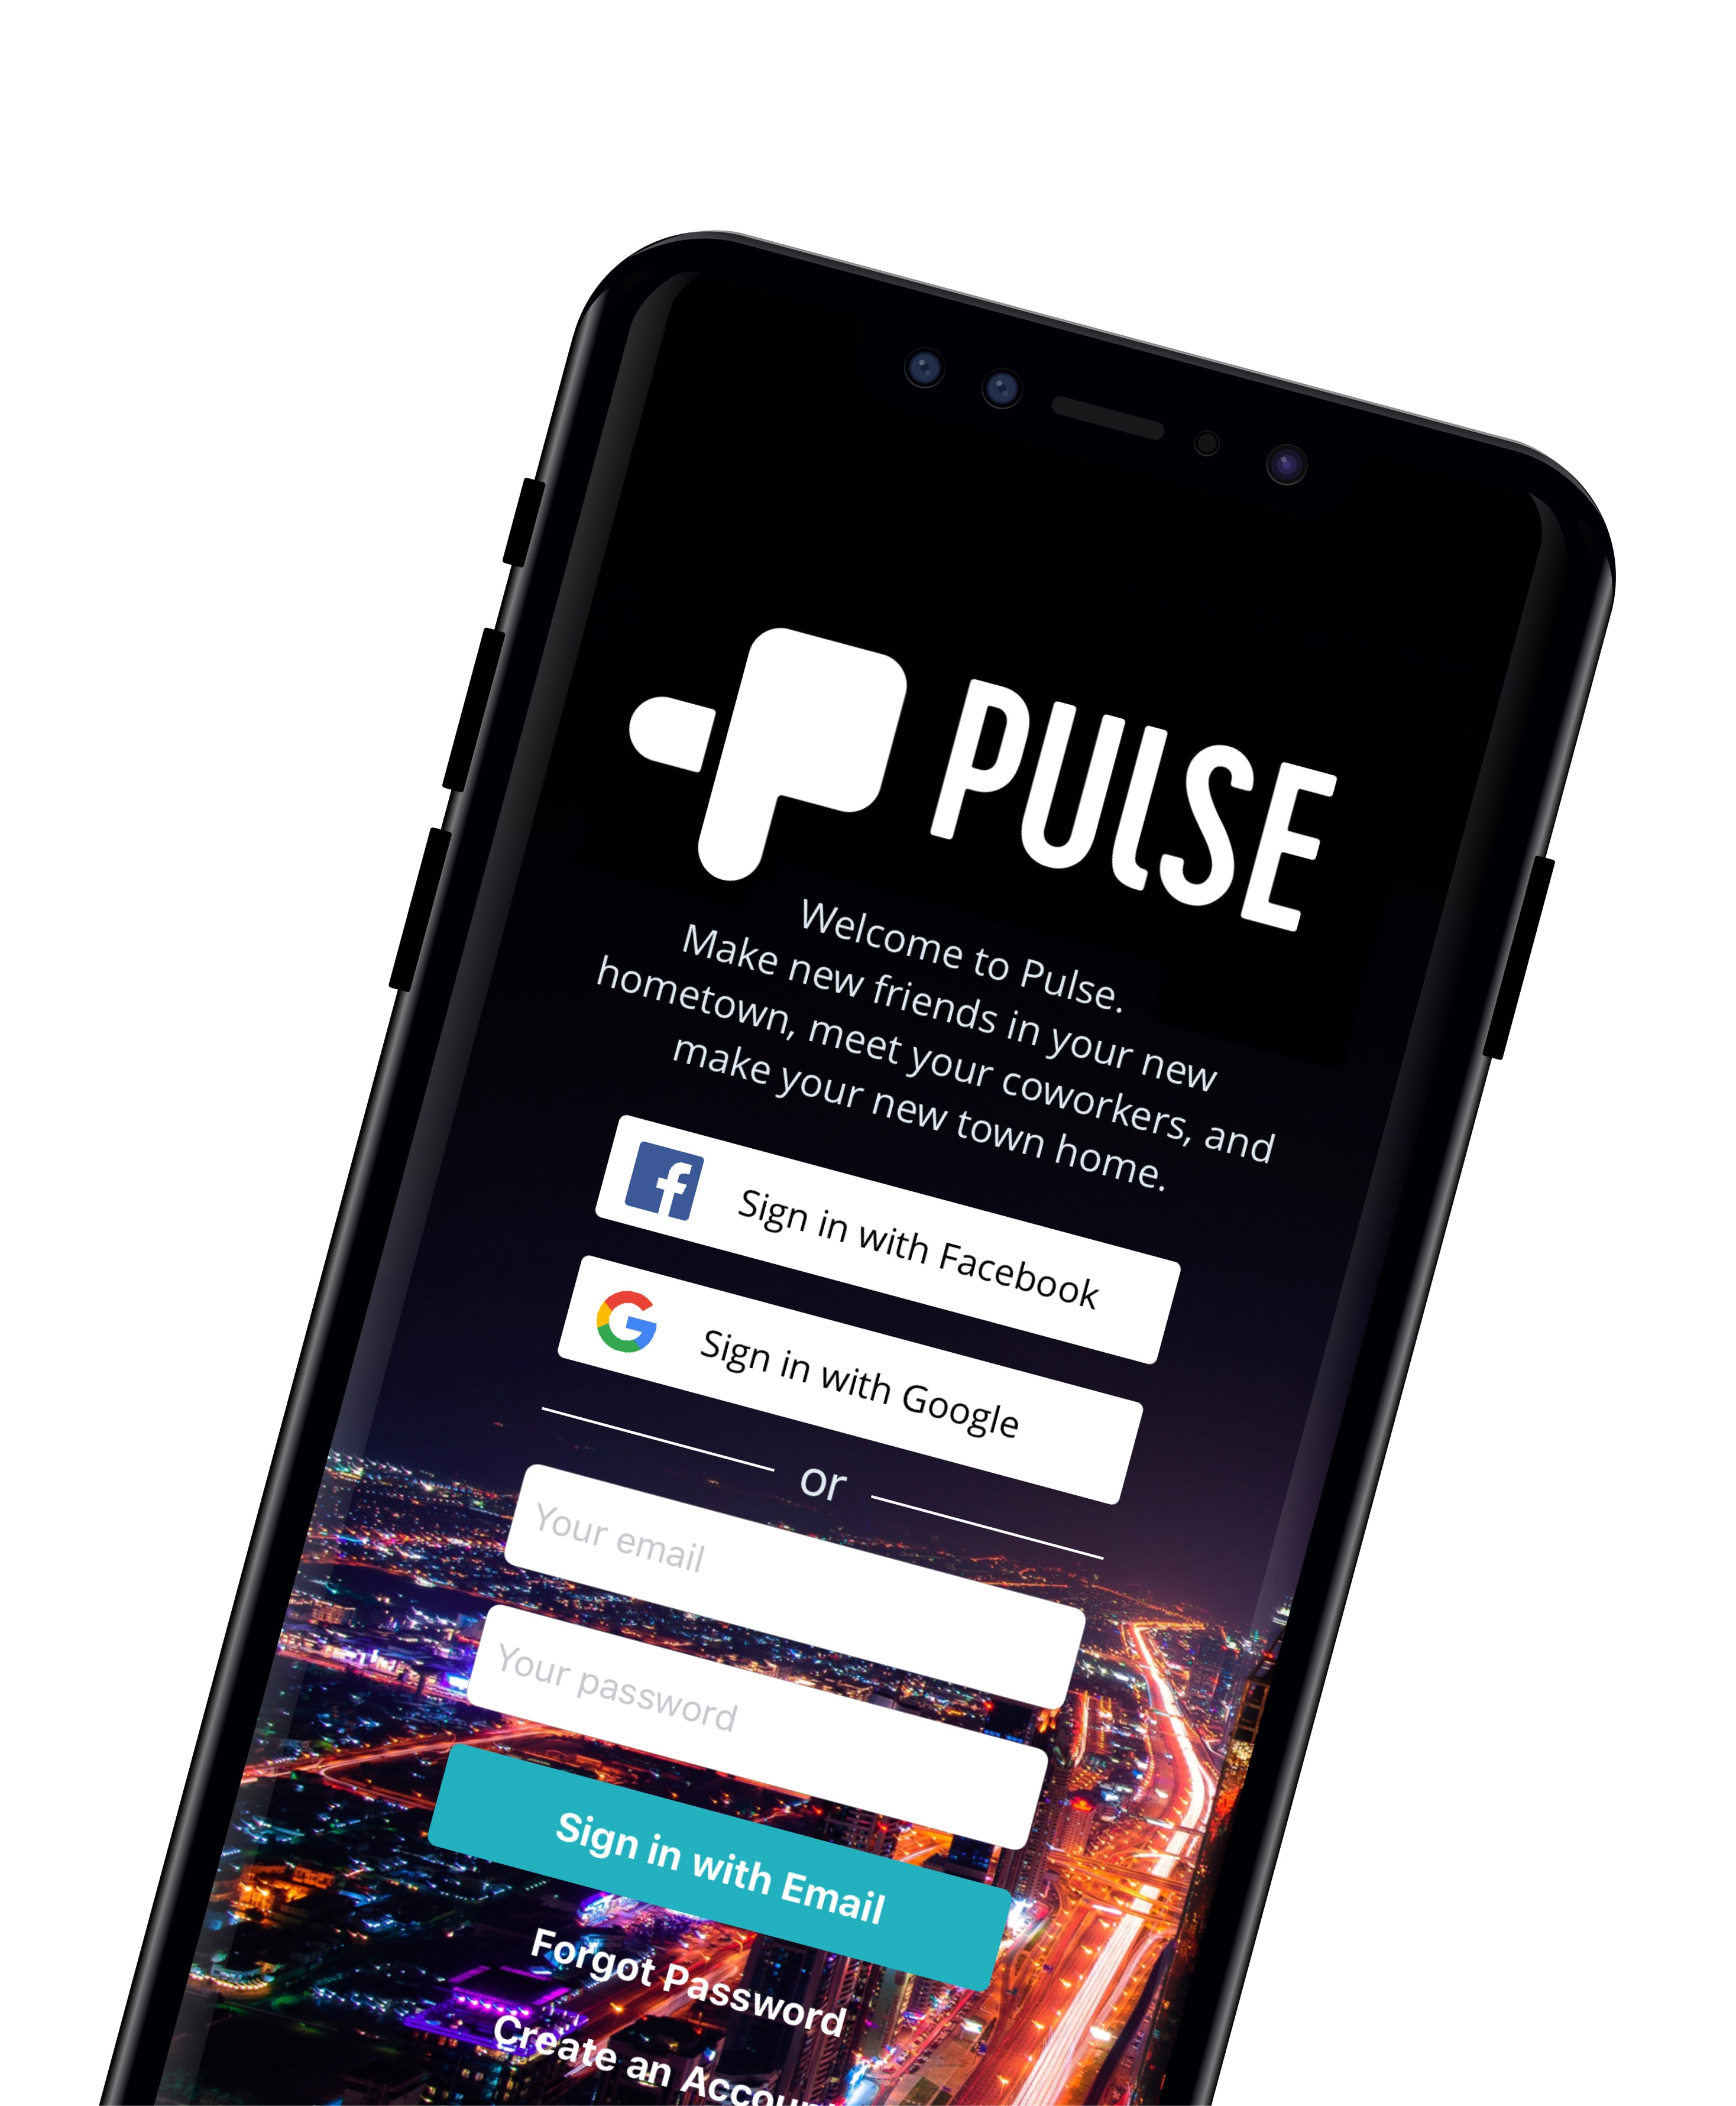 Pulse Launches First-of-Its-Kind Mobile App Where Medical Travelers